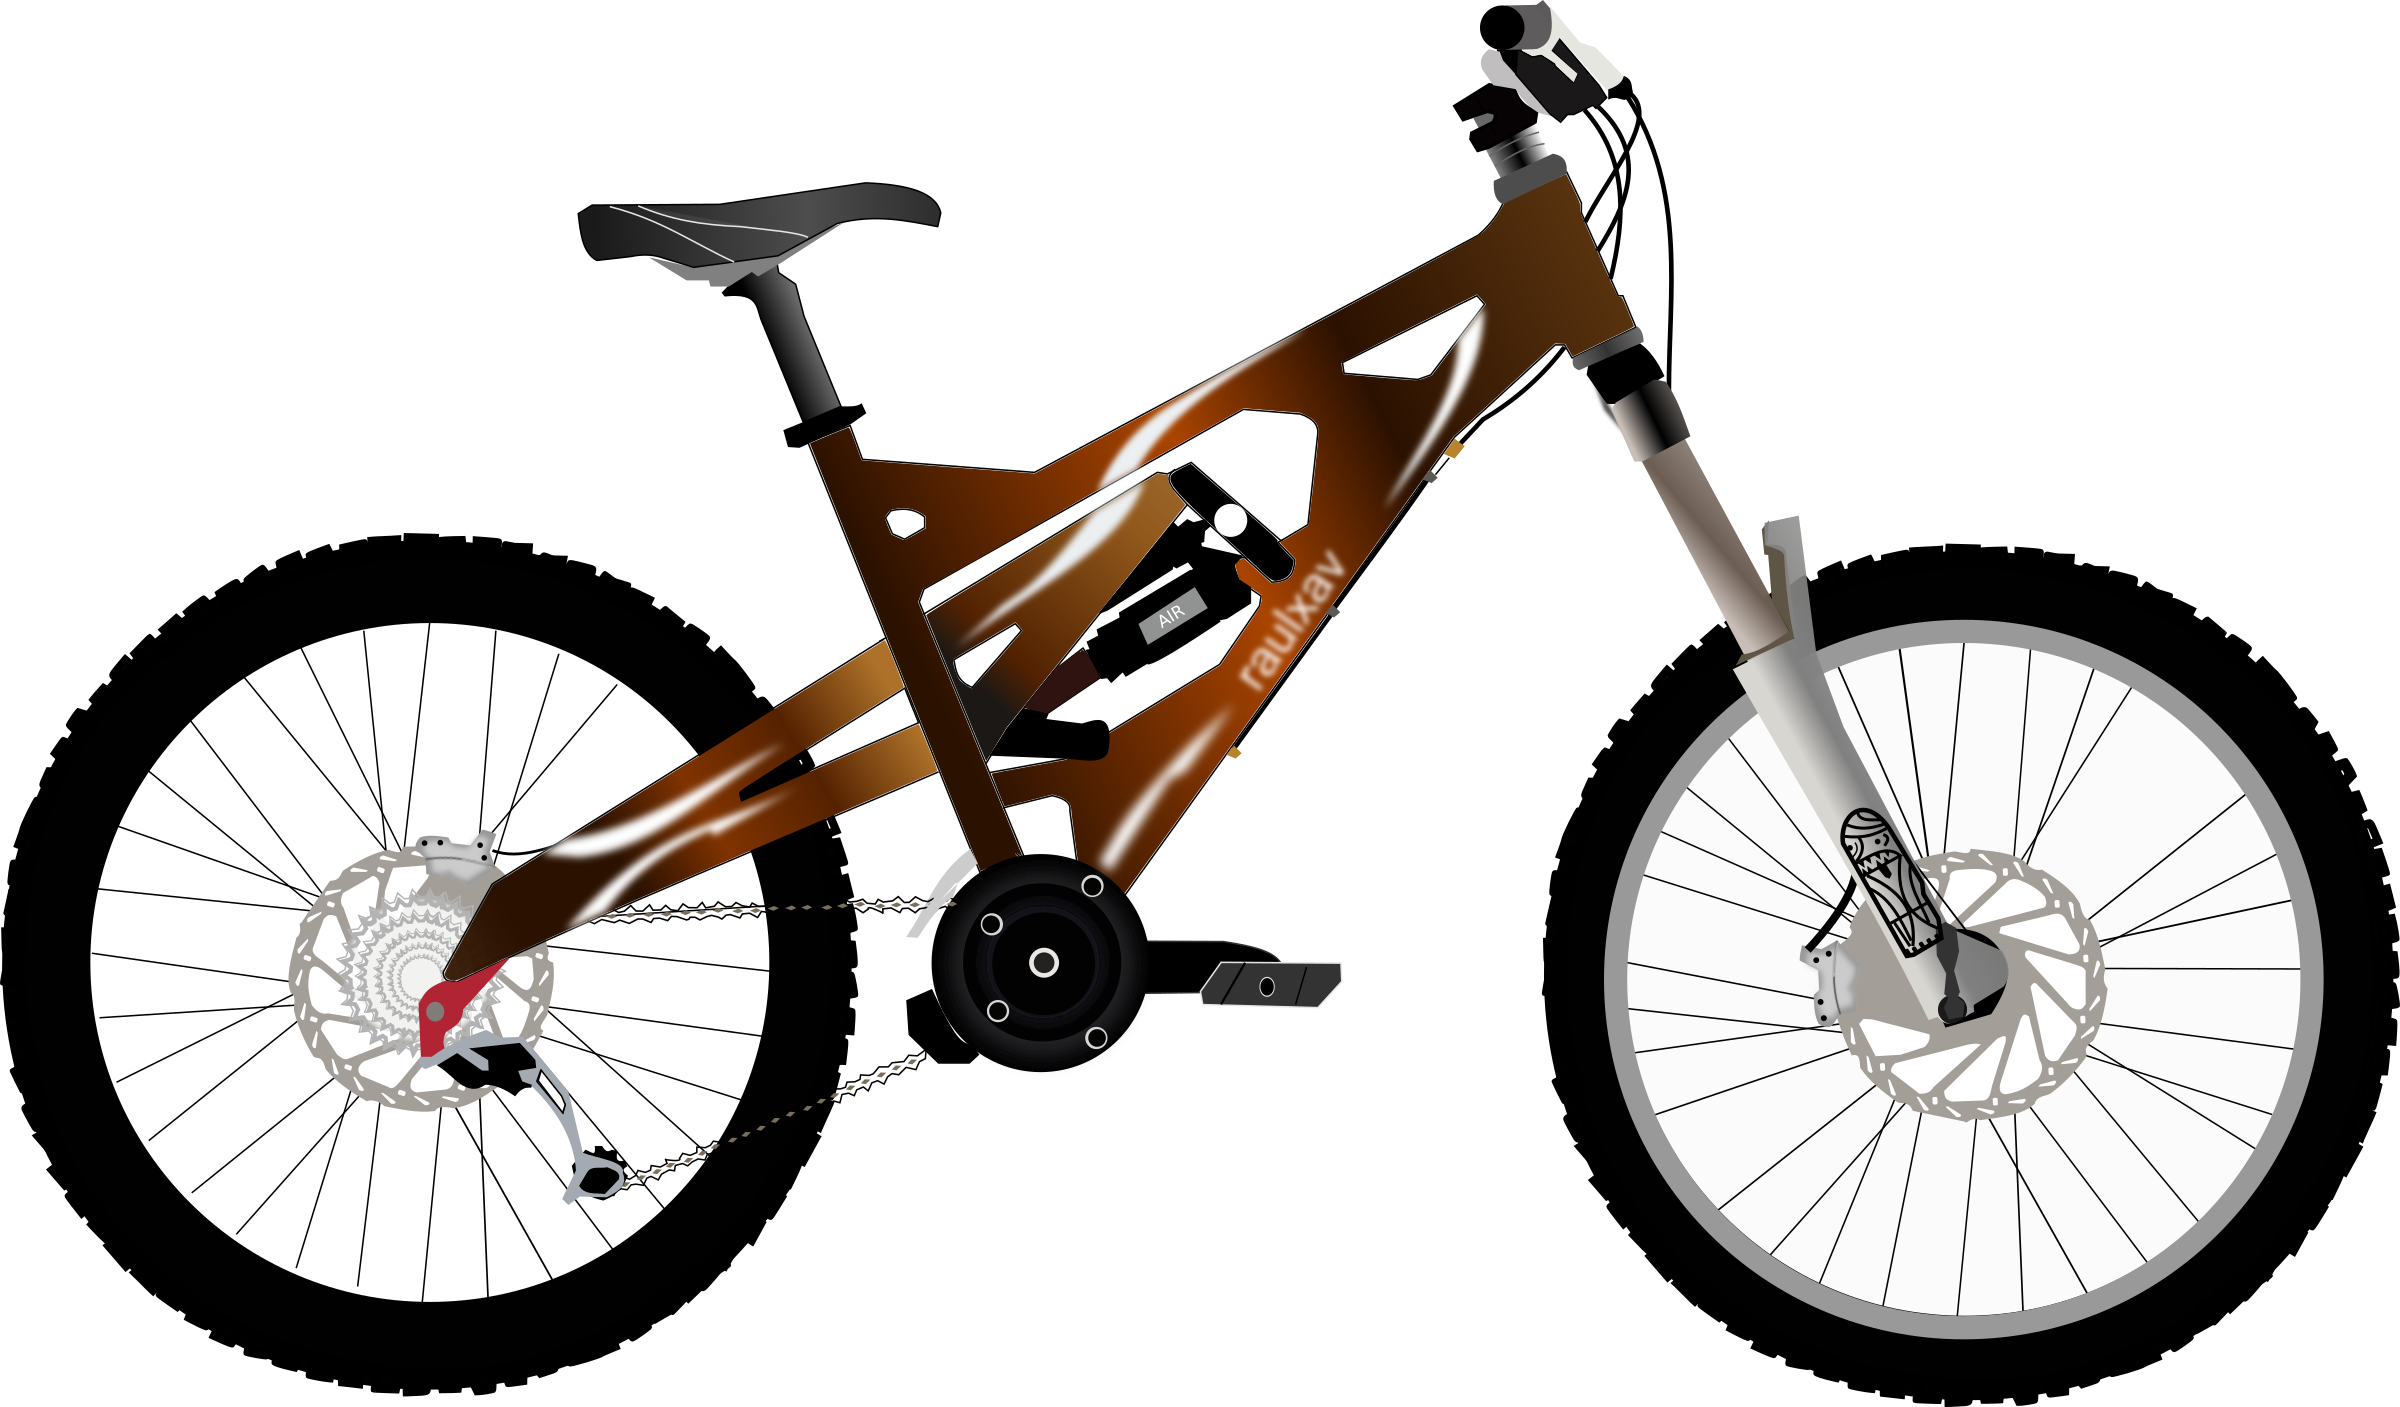 Bike big image png. Cycle clipart toy